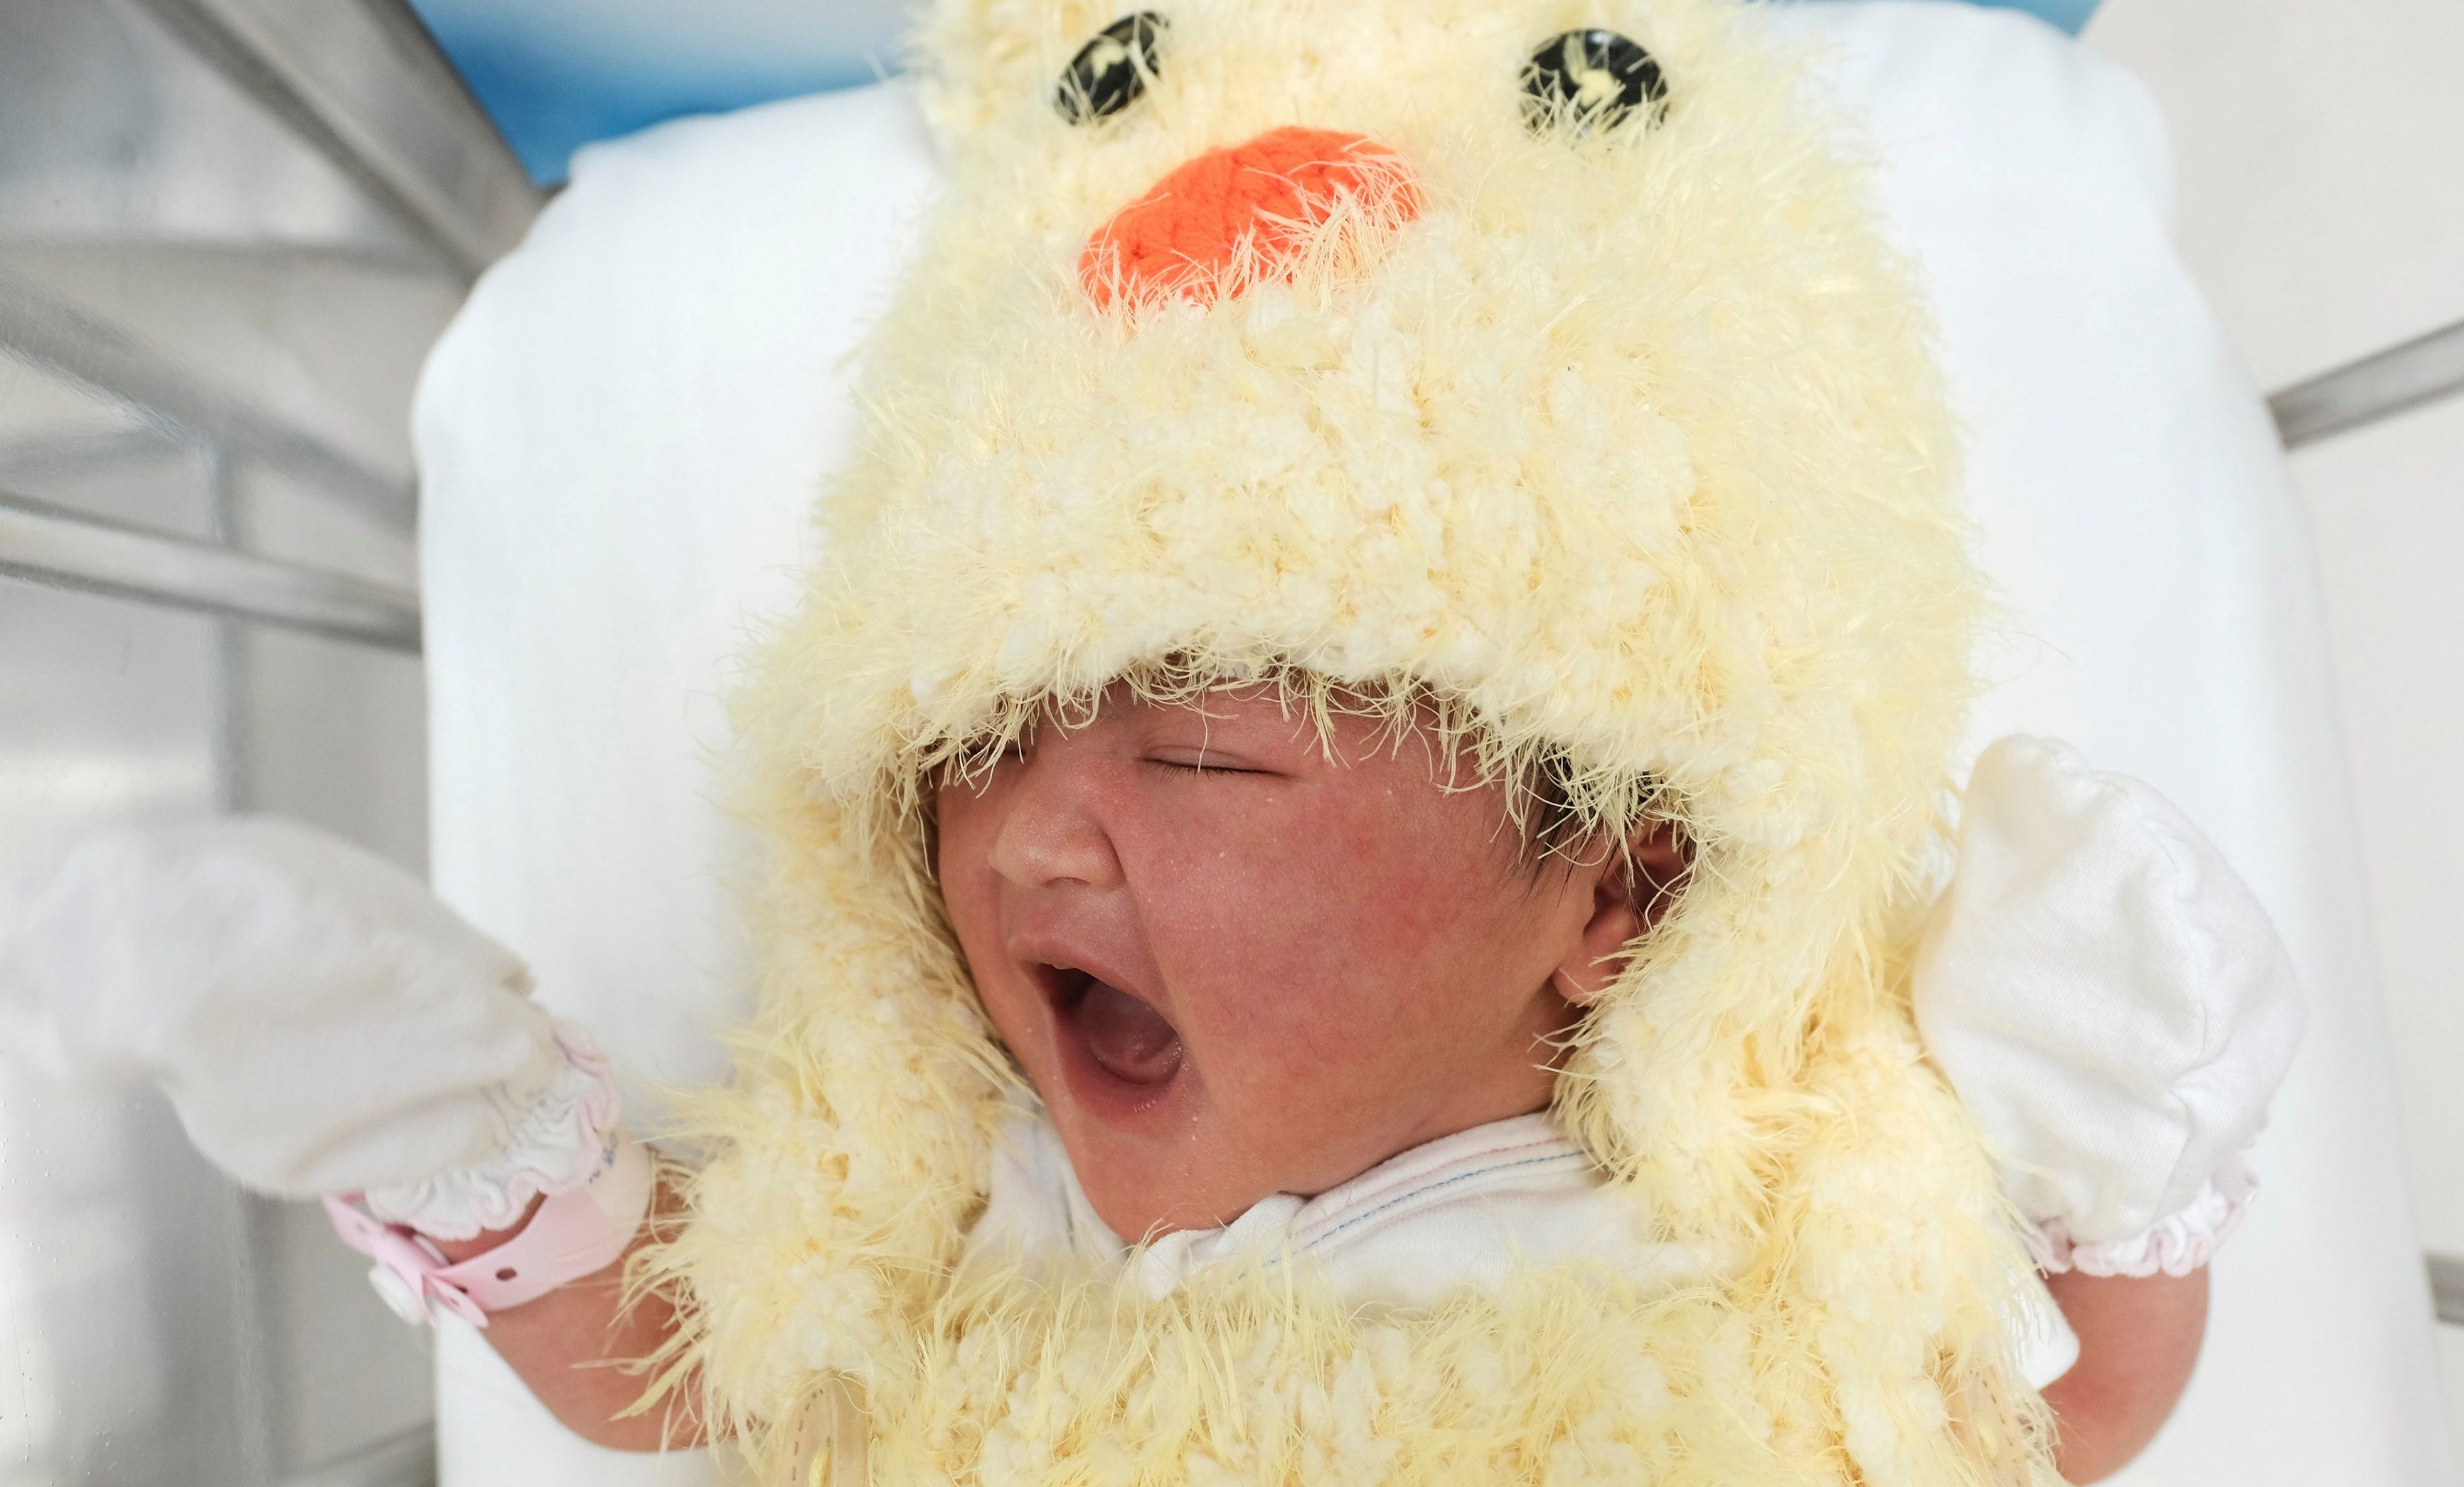 A newborn baby wearing a chicken costume to celebrate the Chinese New Year of the Rooster is pictured at the nursery room of Paolo Chockchai 4 Hospital, in Bangkok, Thailand January 27, 2017.